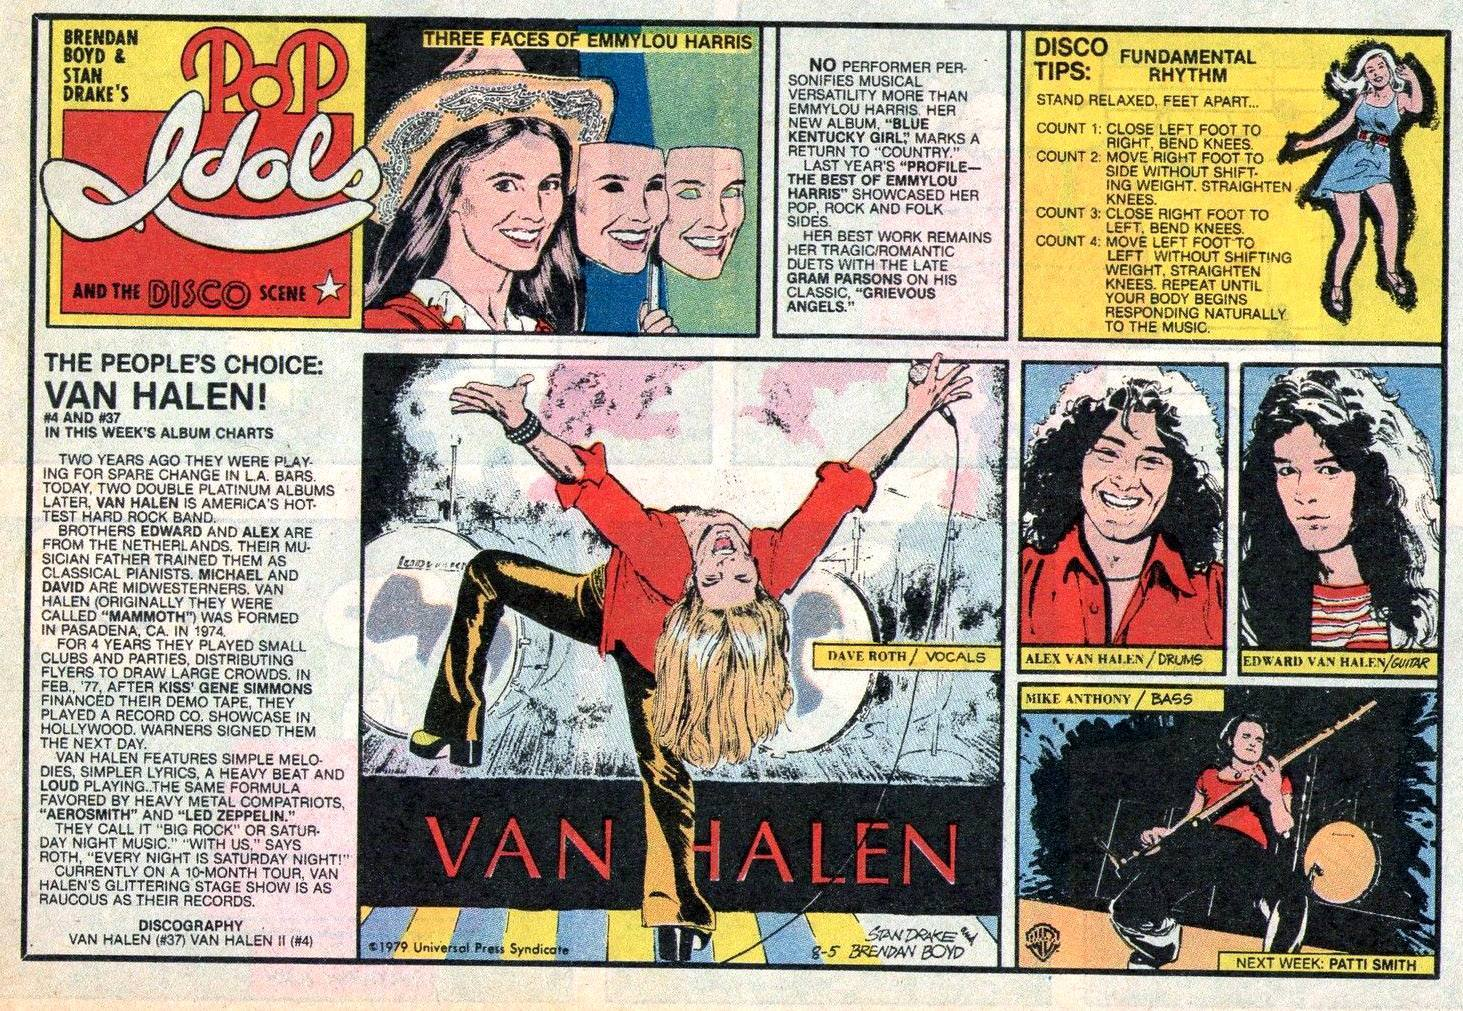 POP IDOLS AND THE DISCO SCENE Newspaper Strip Sunday August 5 1979